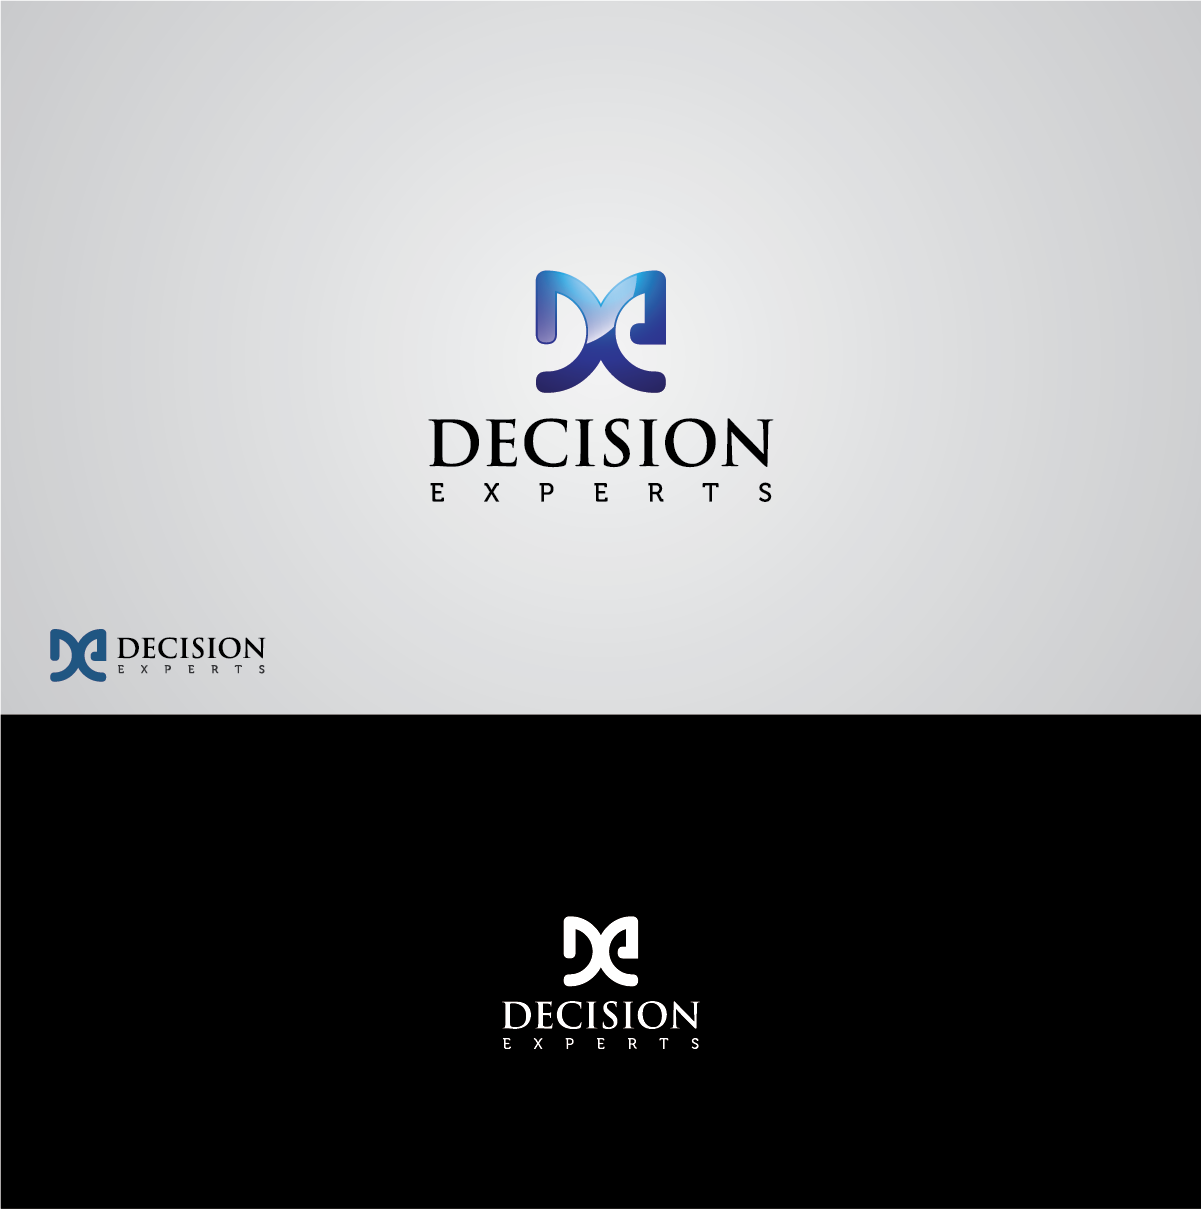 New logo wanted for Decision Experts